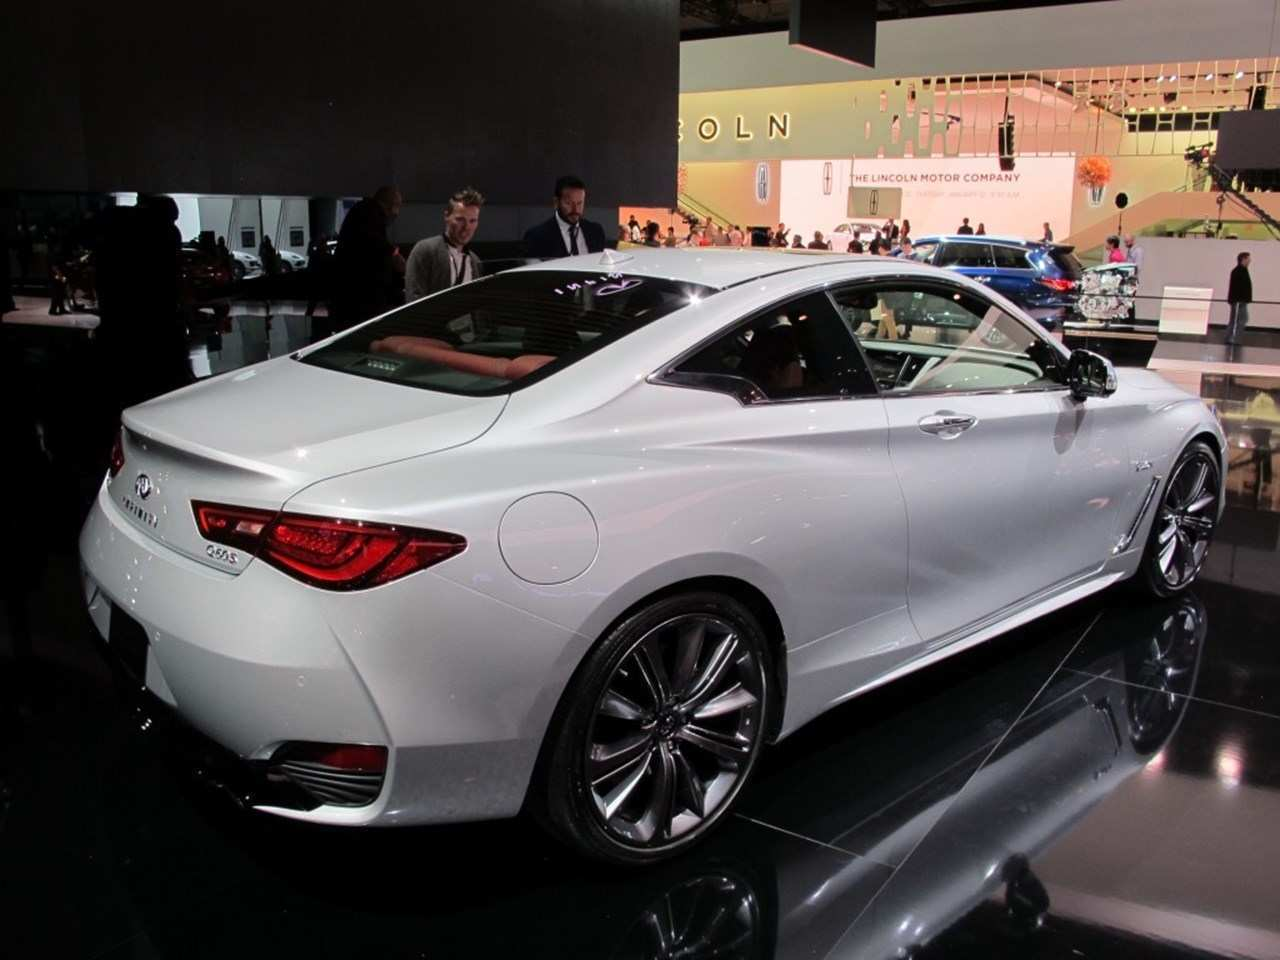 87 All New 2020 Infiniti Q60 Price New Concept for 2020 Infiniti Q60 Price